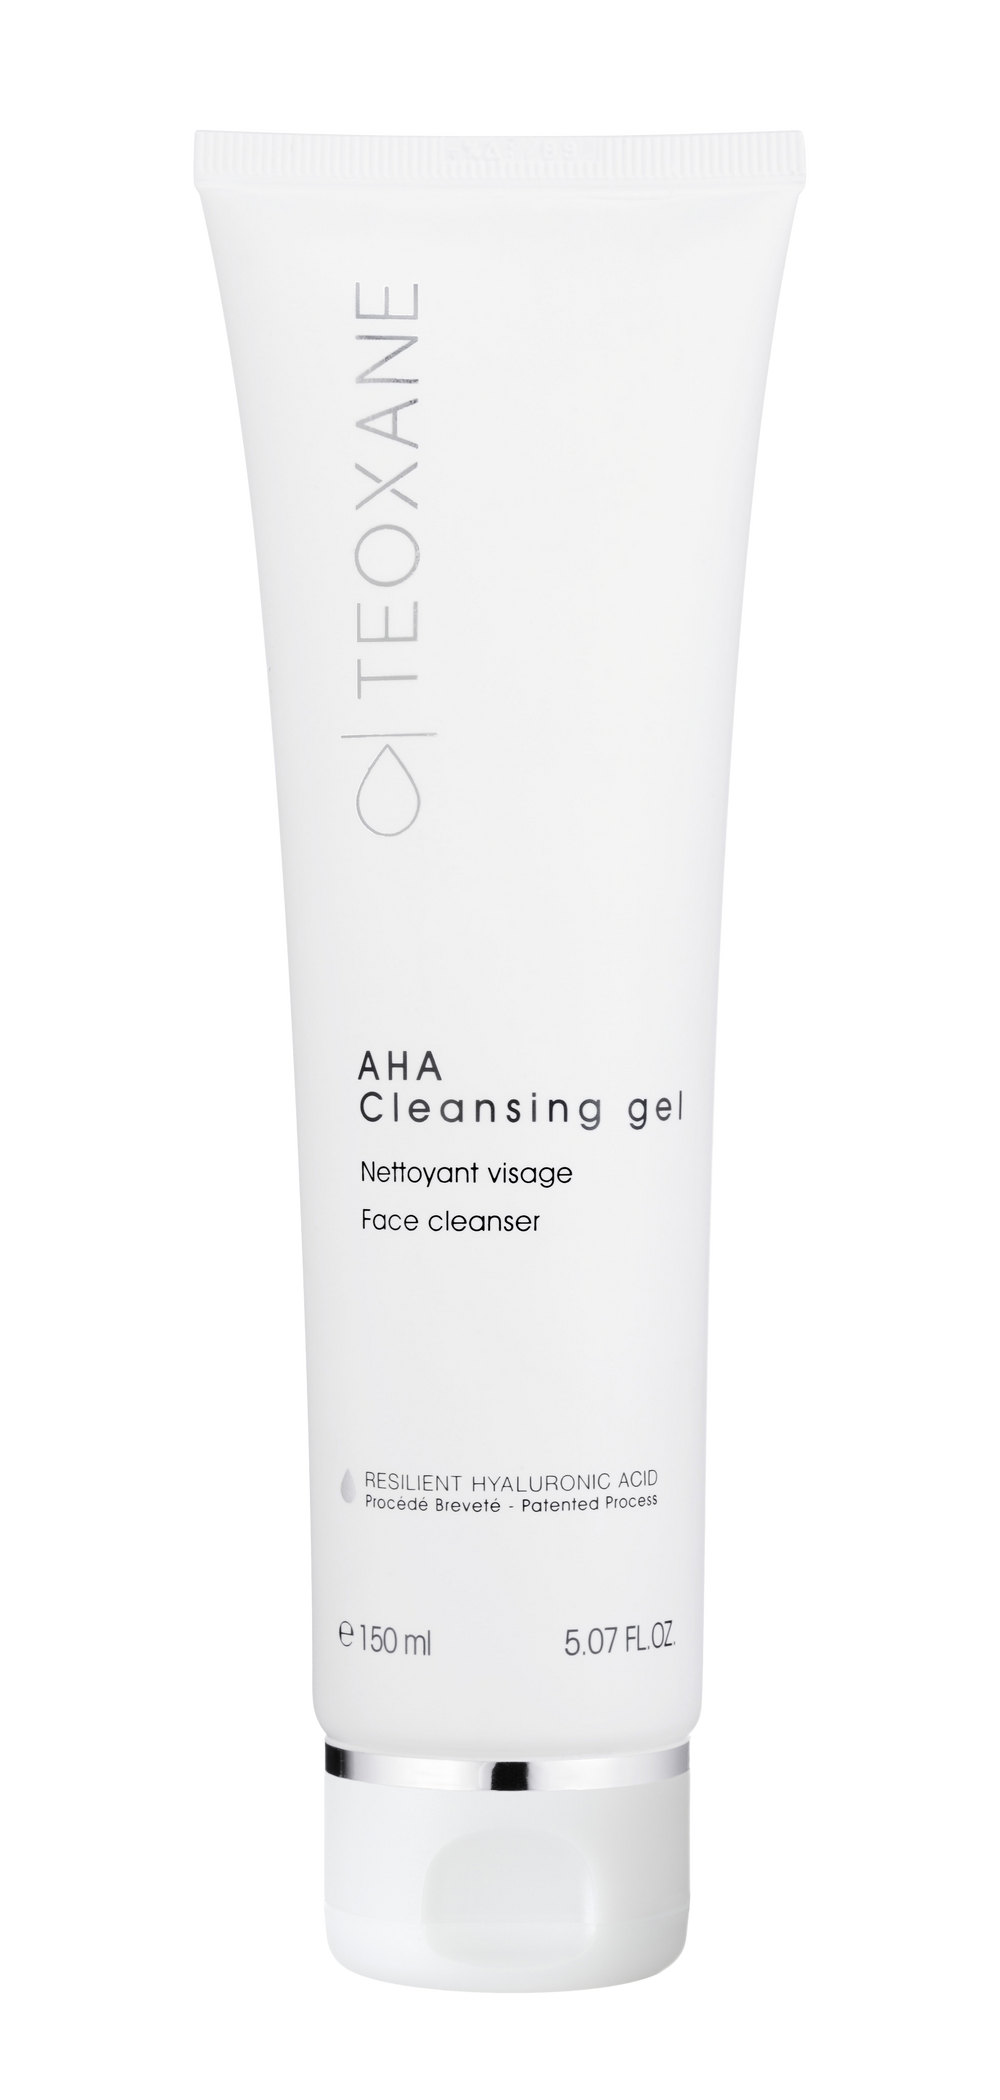 AHA Cleansing gel